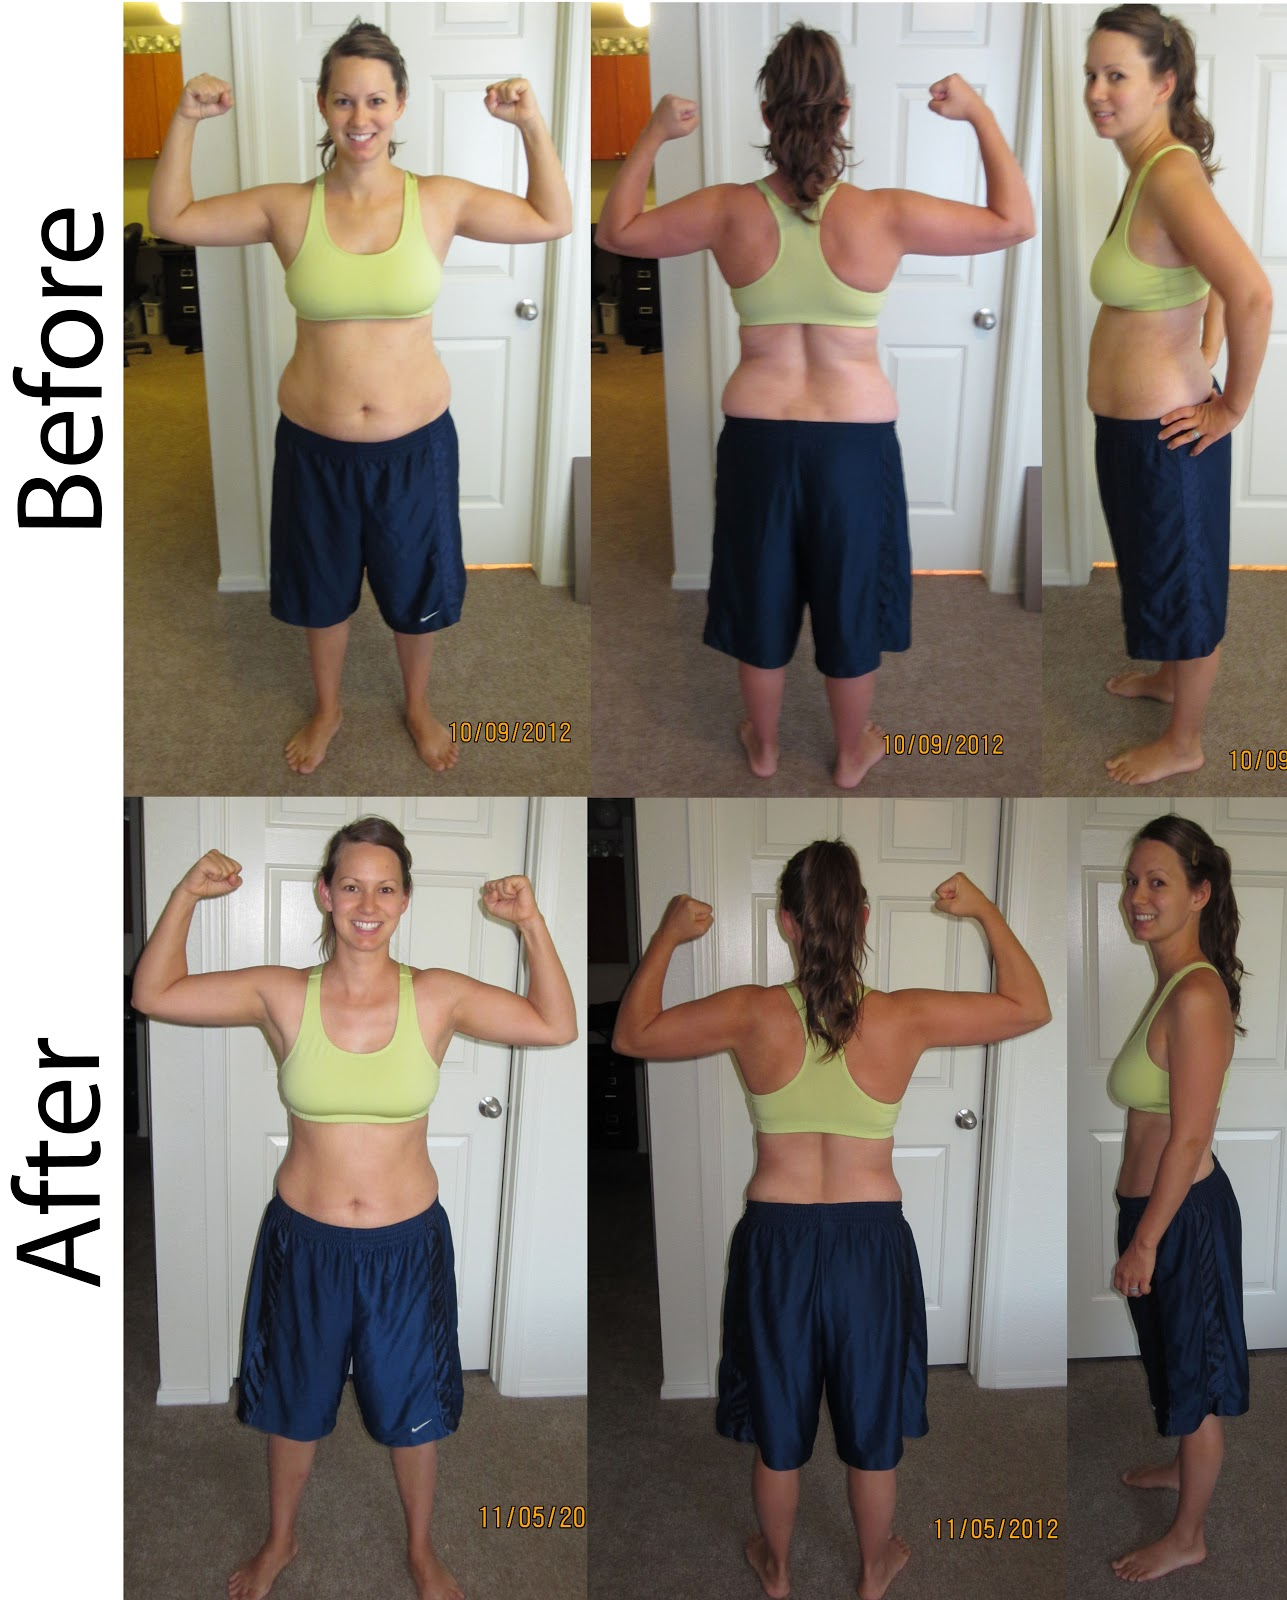 Insanity Workout Before And After : insanity, workout, before, after, What's, Cookin', Potter's...:, Before, After, Insanity